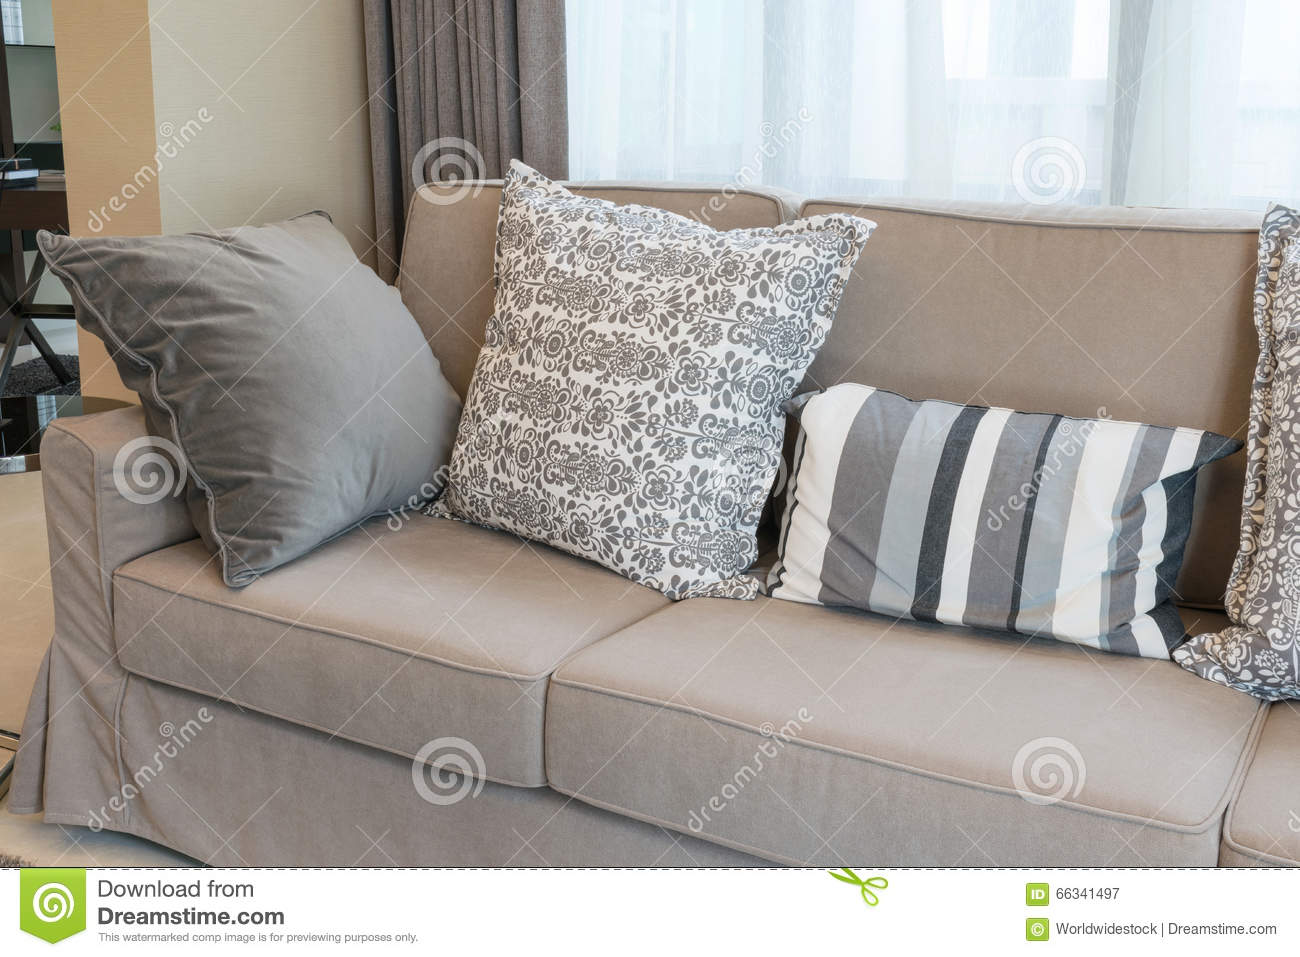 Brown Sofa With Grey Patterned Pillows Stock Photo - Image: 66341350